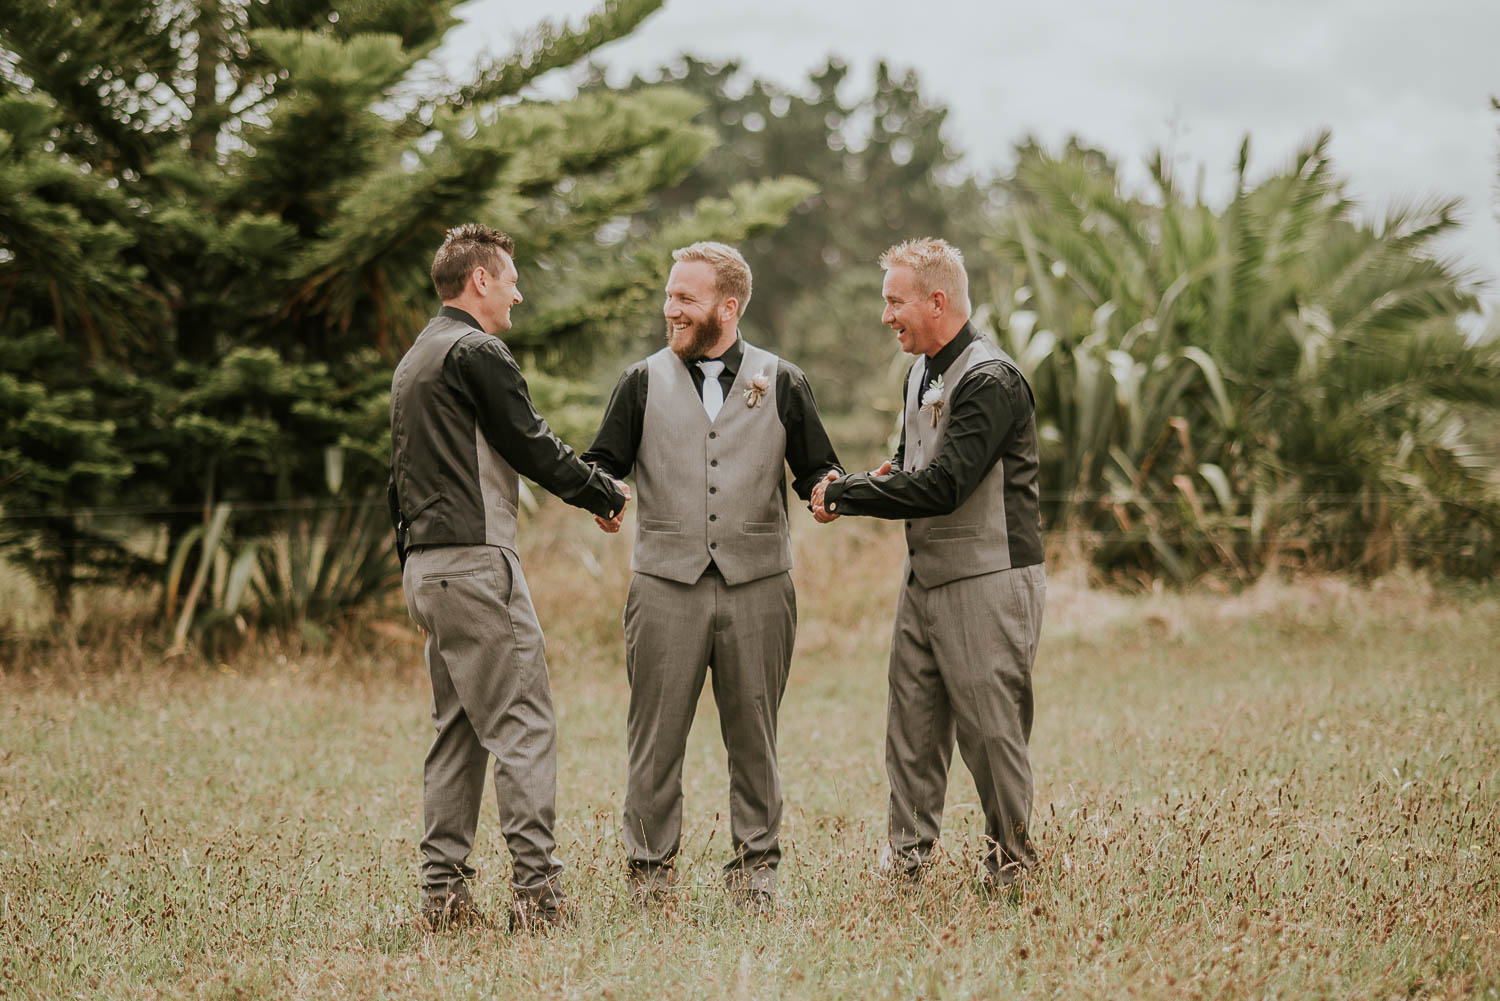 David-Alysha-Farm-Rustic-Auckland-Wedding-42